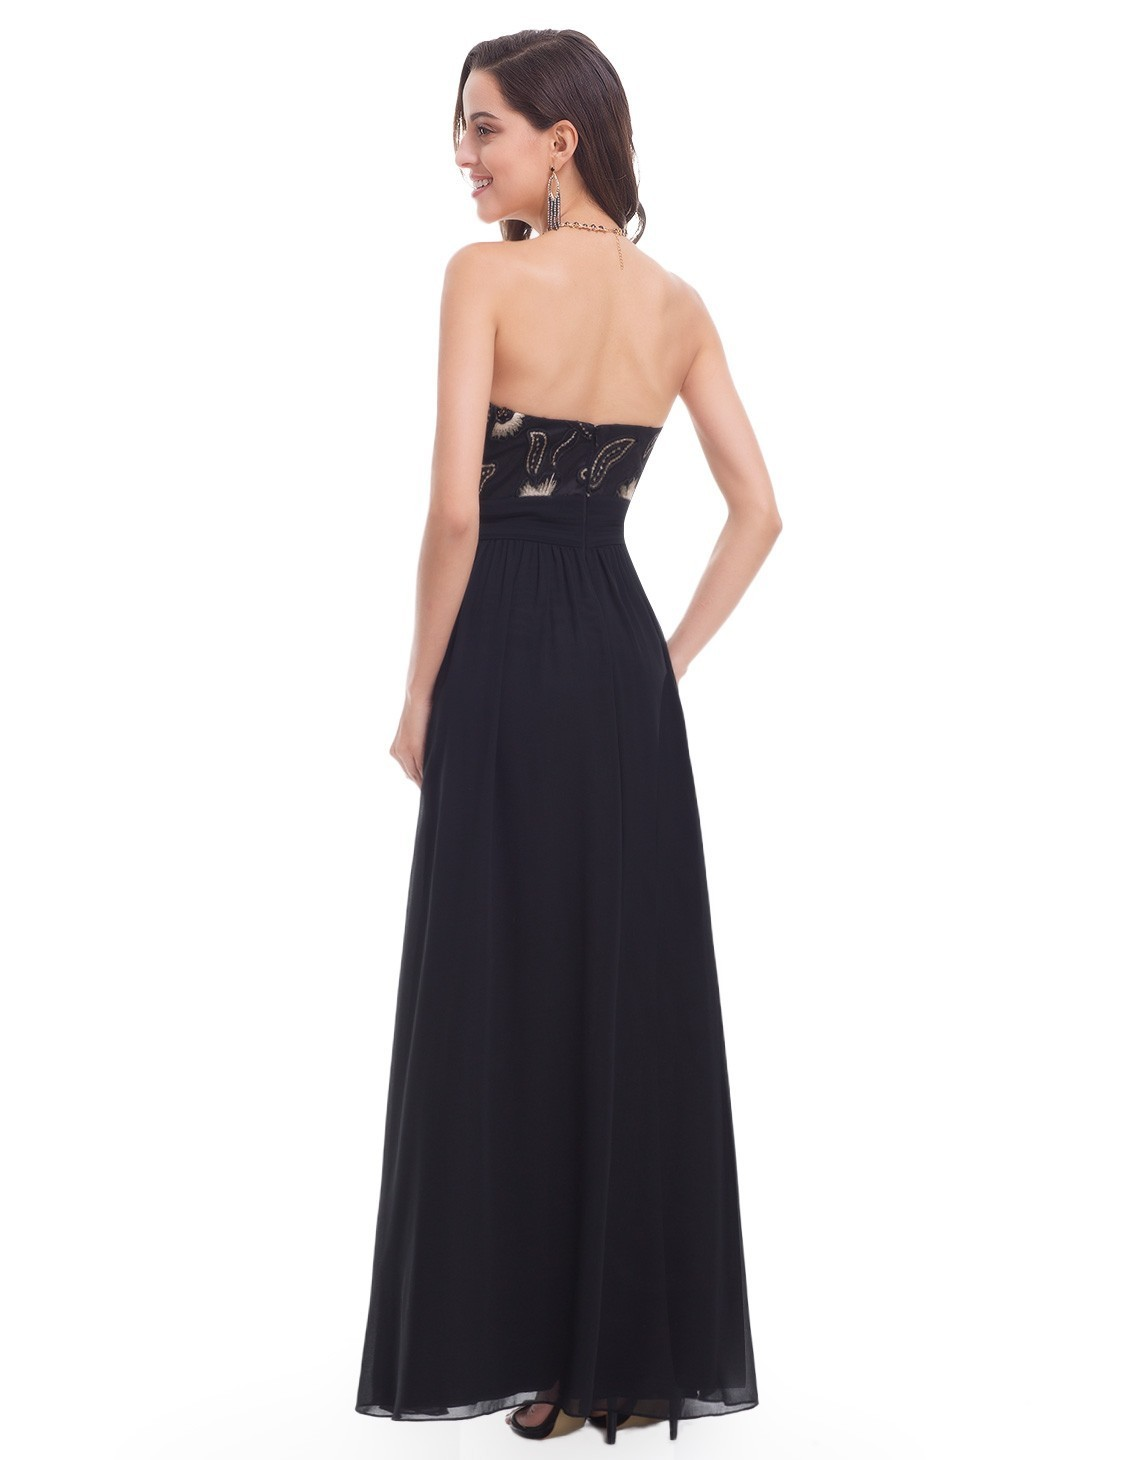 【日本未入荷】Strapless Empire Waist Evening Gown_H-102